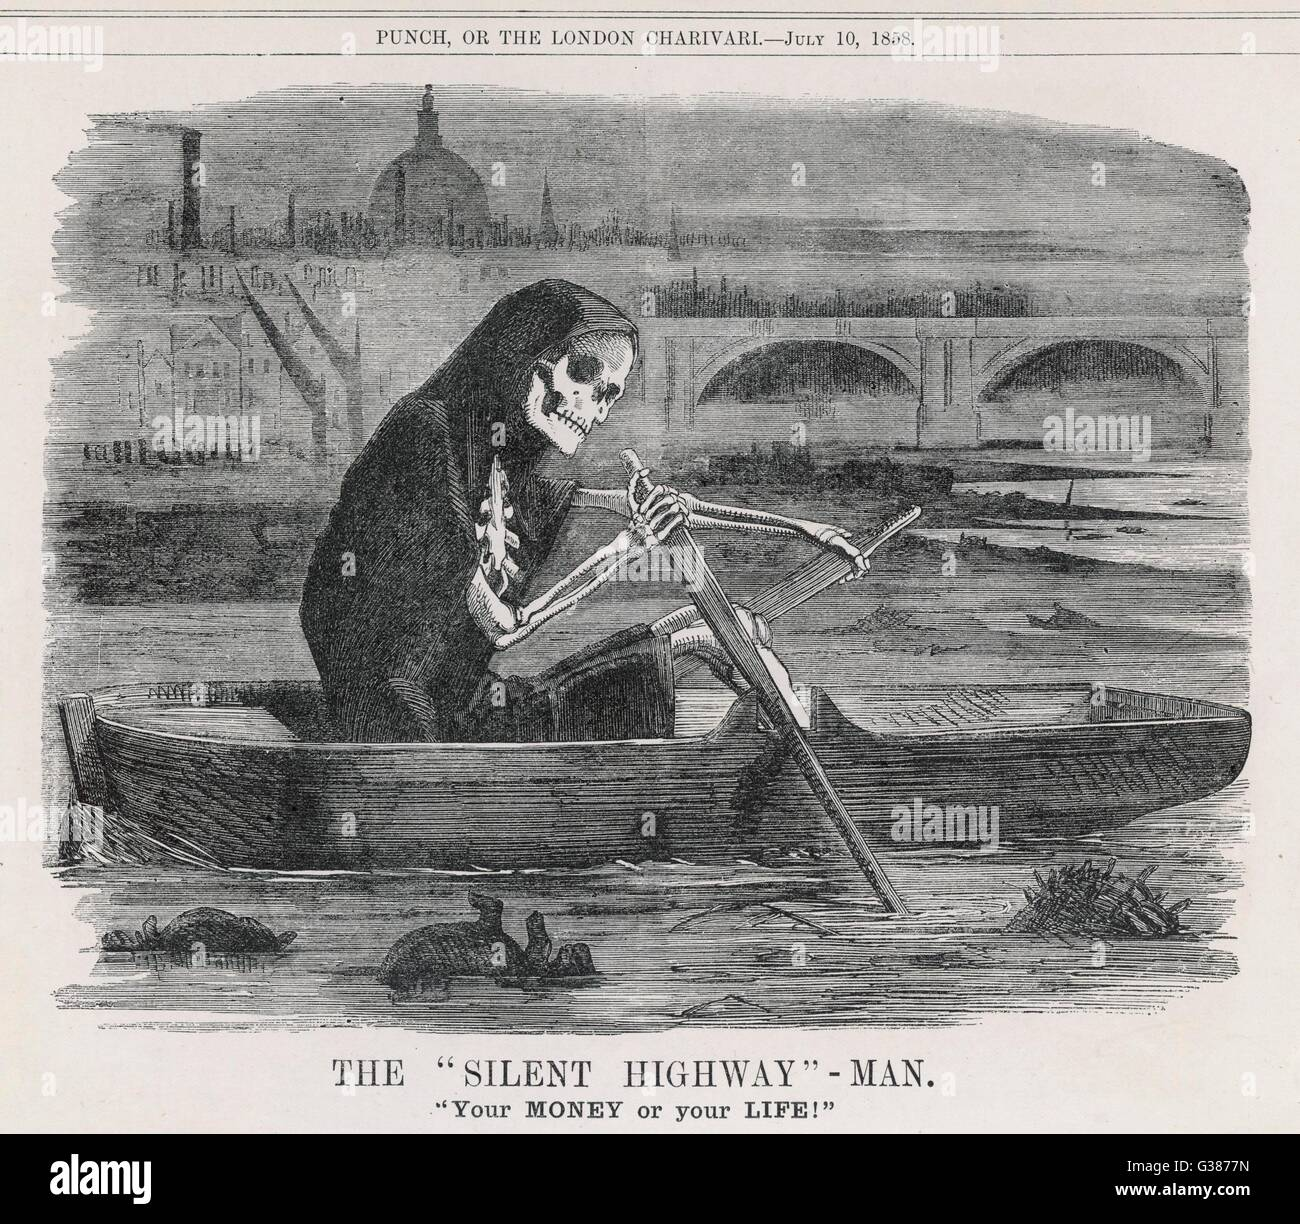 Death - 'The Silent  Highway-Man' of the polluted River Thames       Date: 1858 - Stock Image